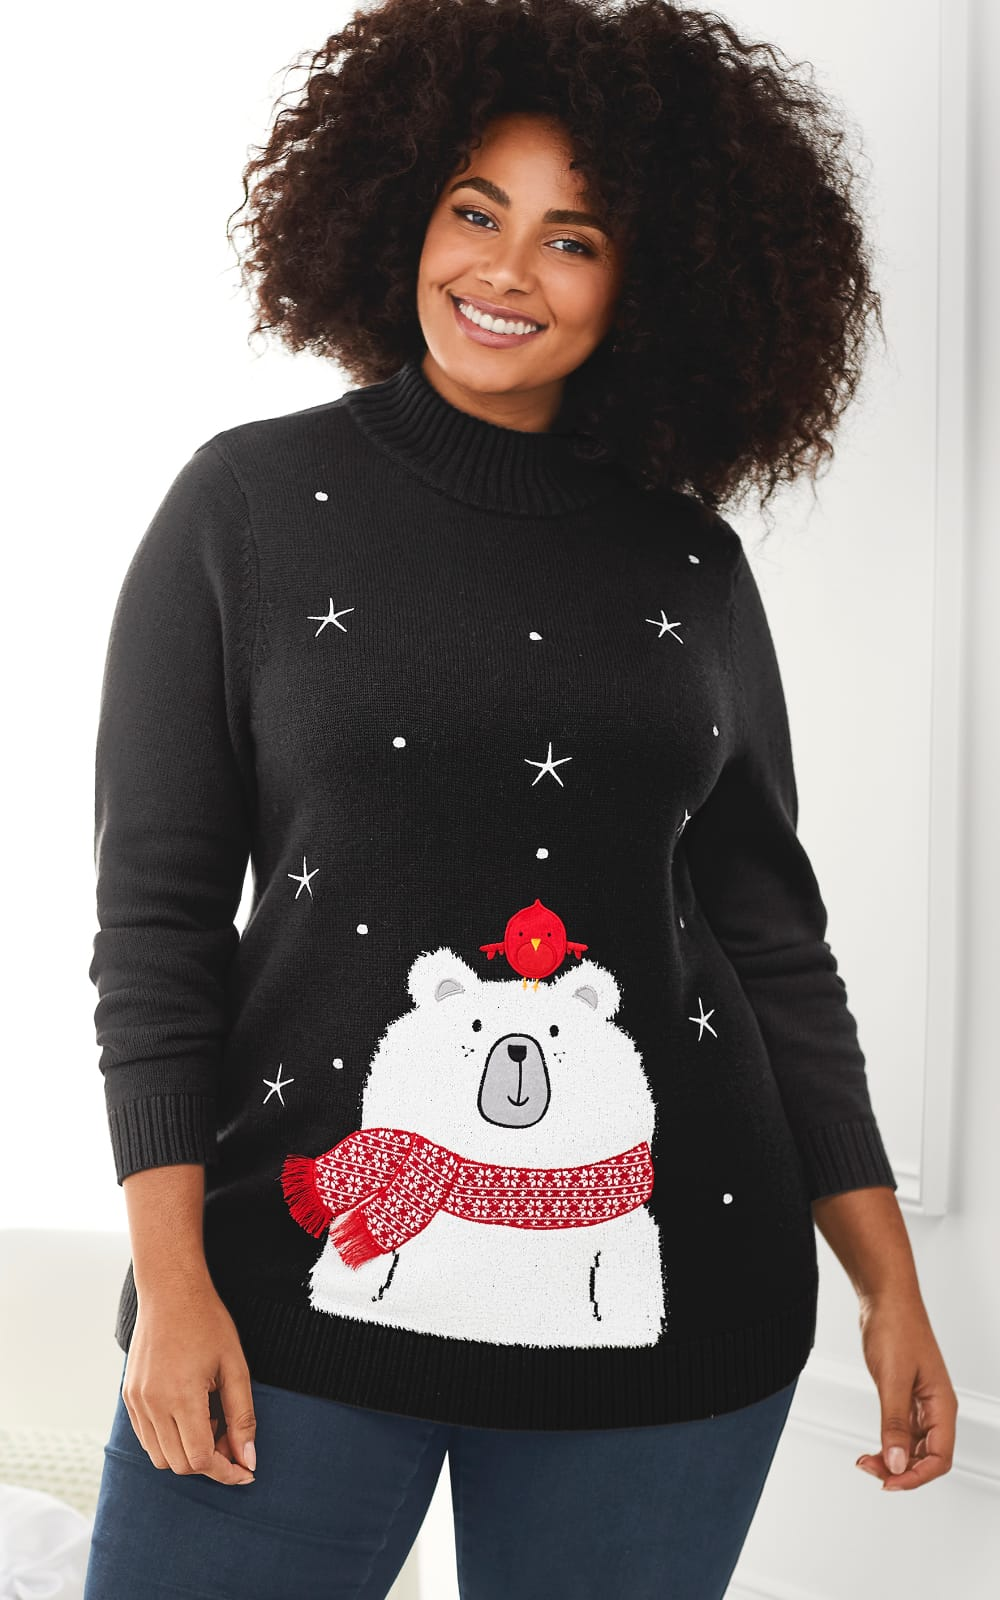 The Office Party Outfit: Featuring the Polar bear and pal pullover sweater.